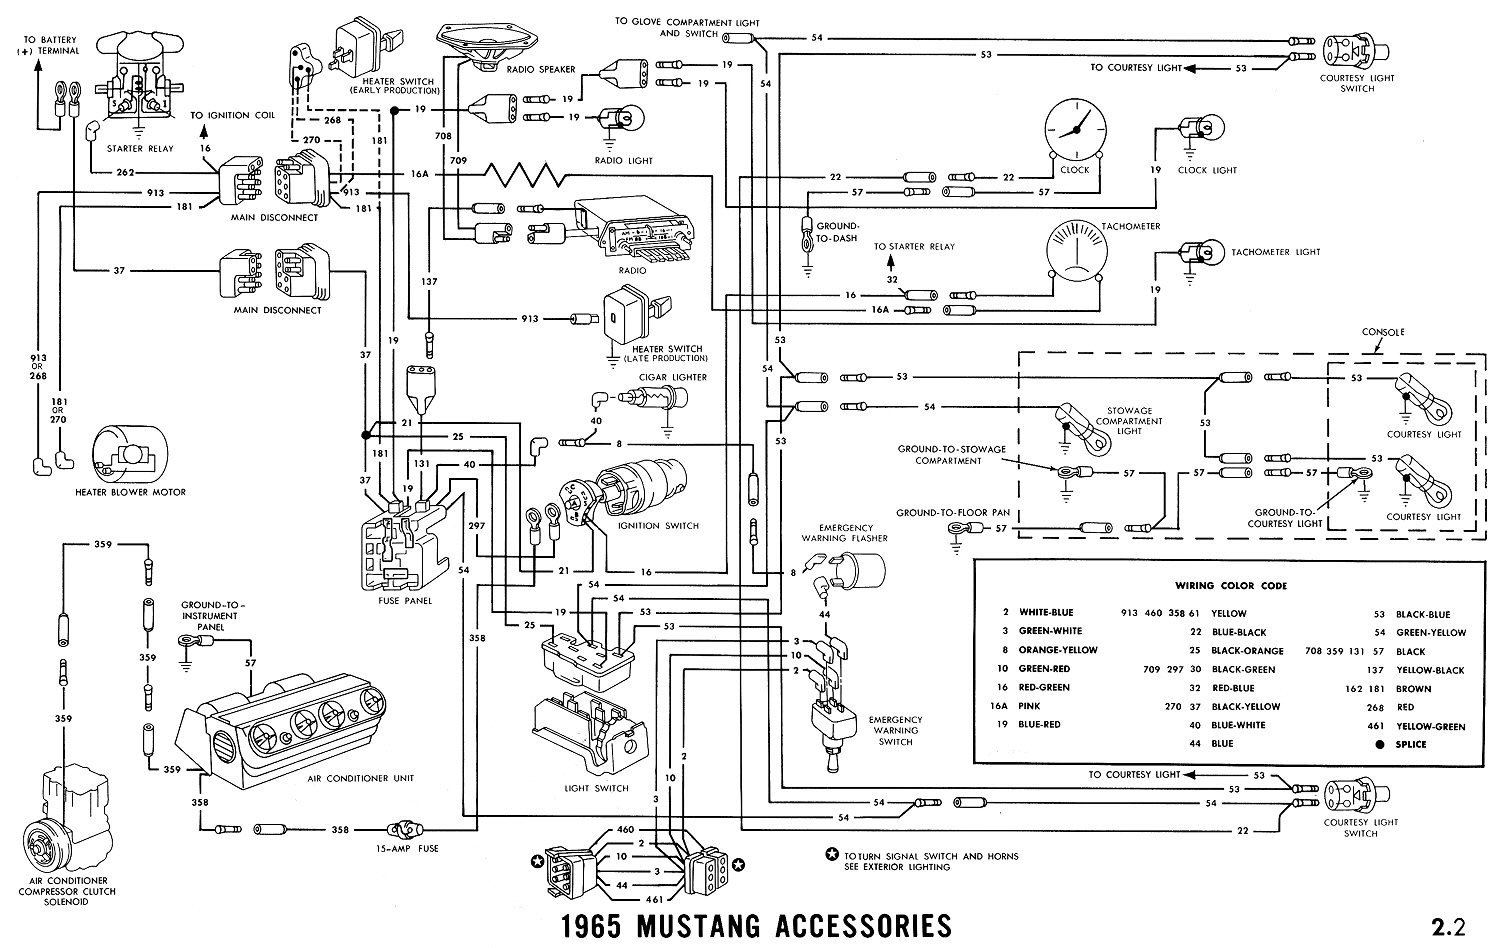 1965i 1965 mustang wiring diagrams average joe restoration 1969 mustang wiring diagram at honlapkeszites.co